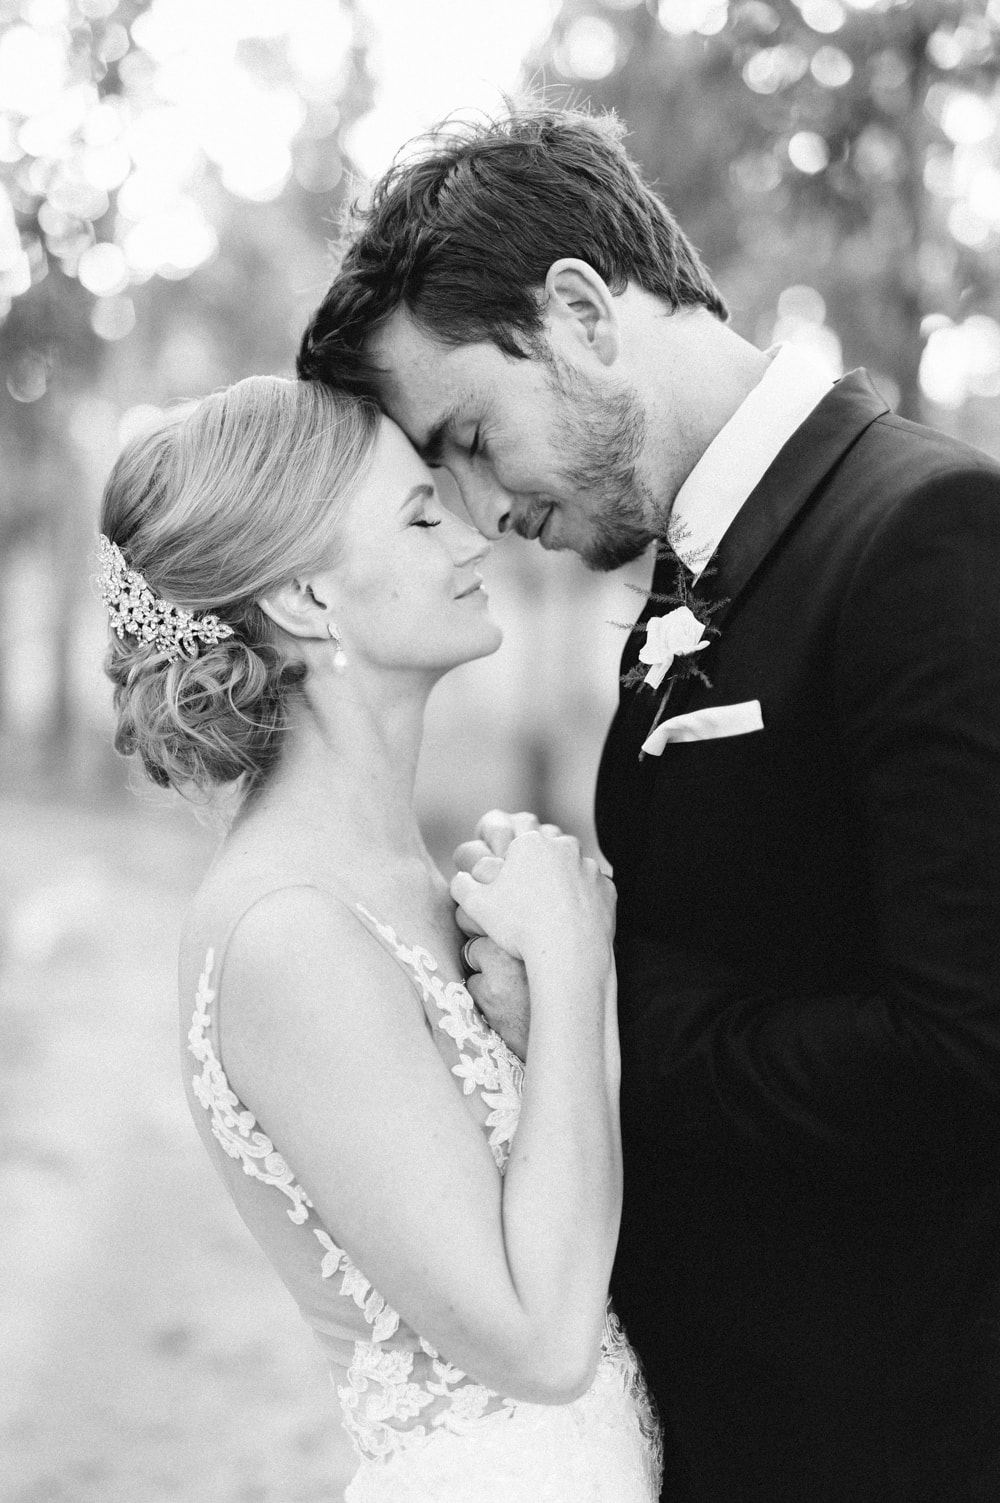 Bride and Groom | Image: Bright Girl Photography